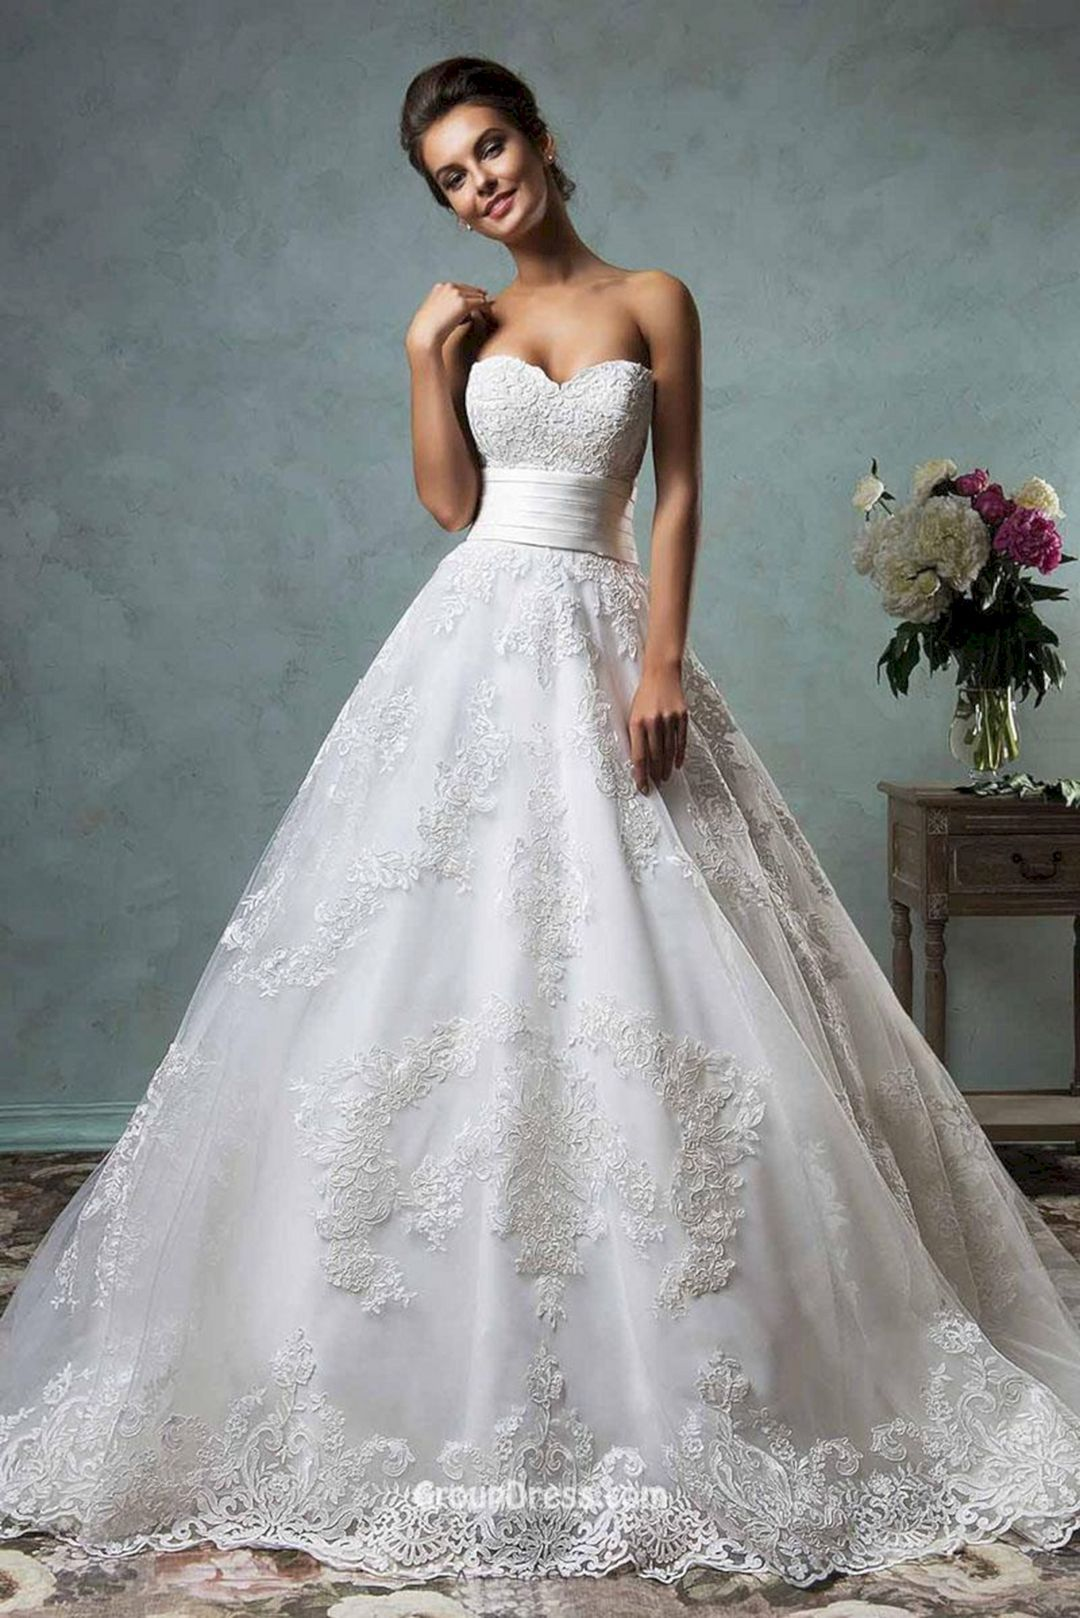 Most Amazing Ball Gown Wedding Dresses That Every People Will